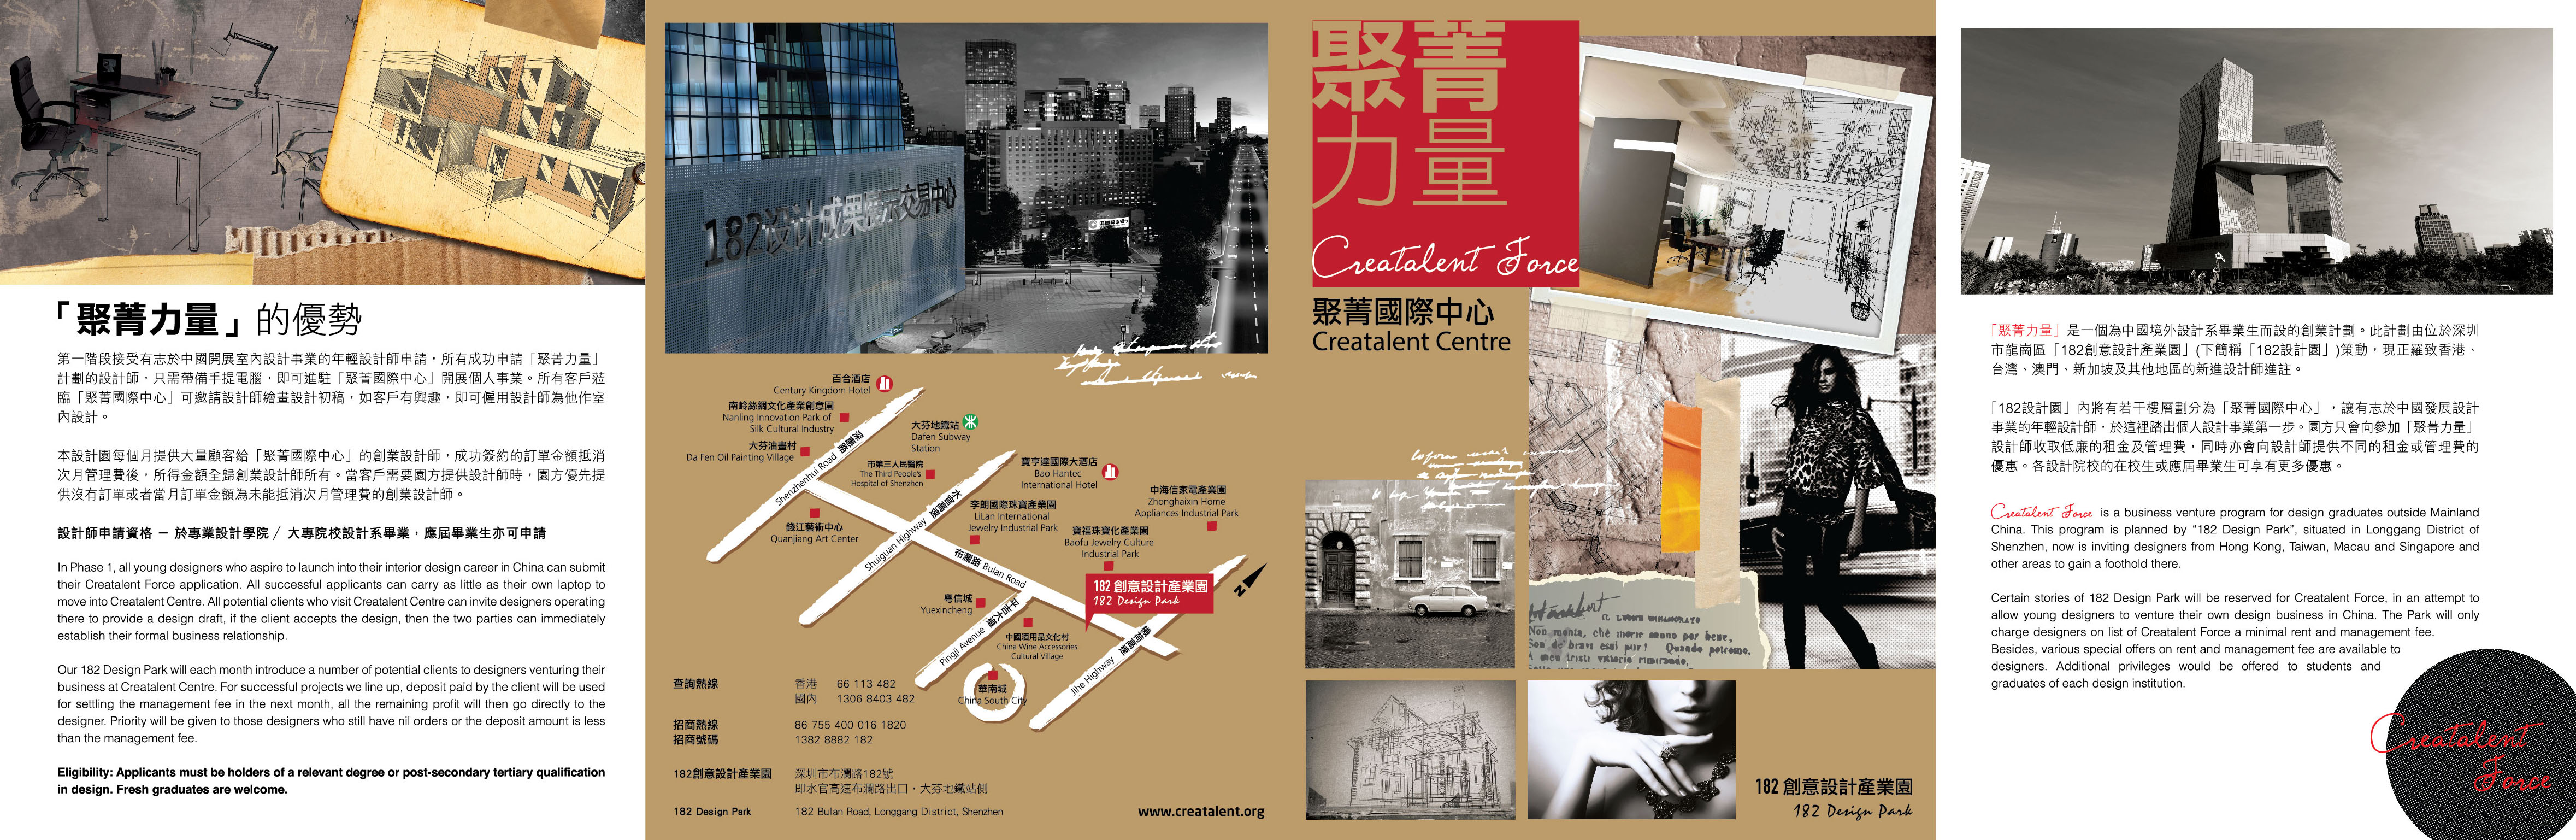 182 Design Park-booklet